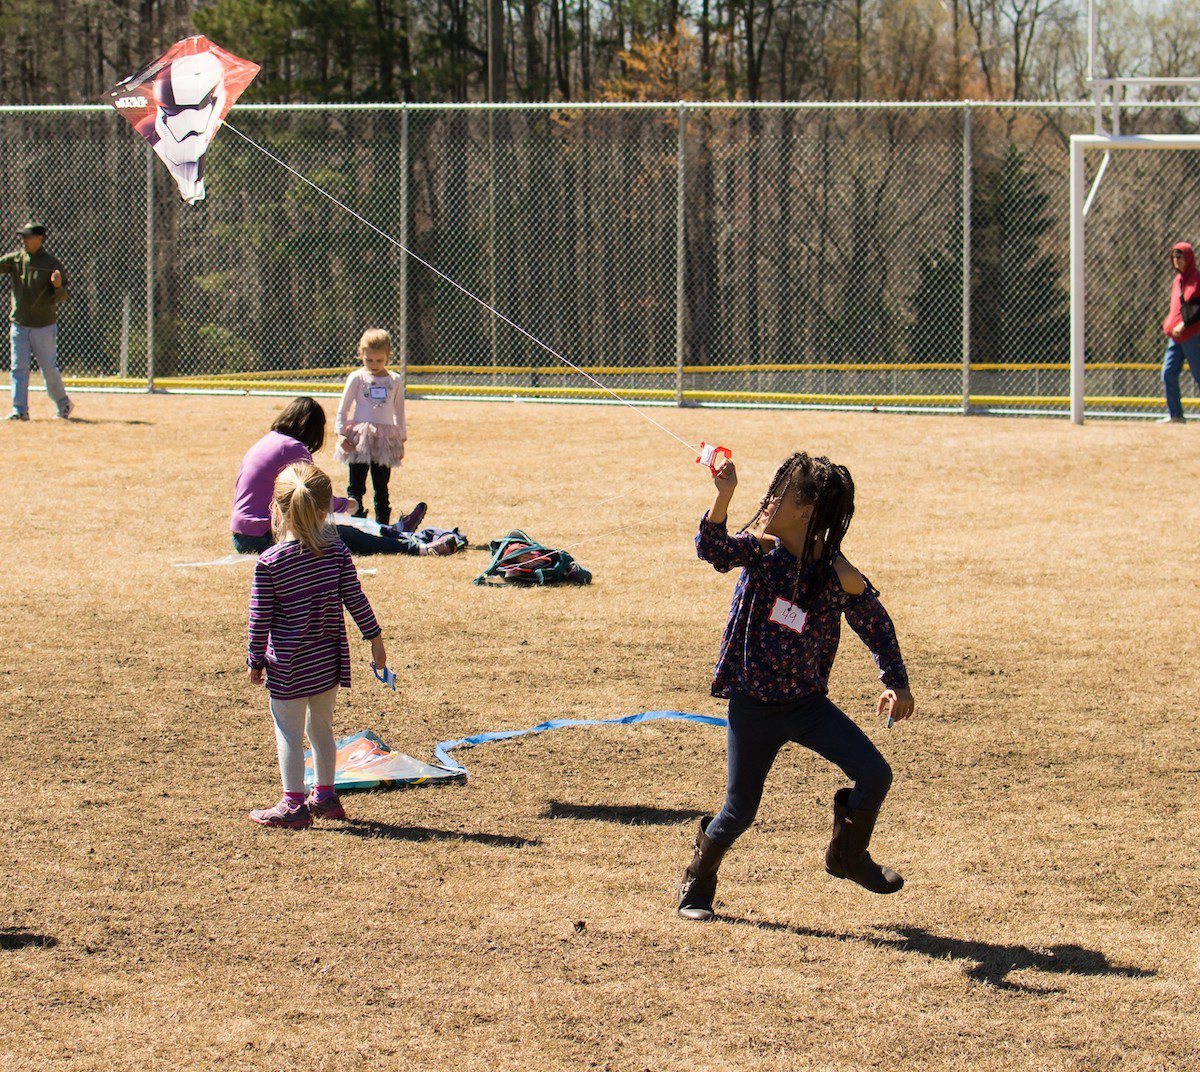 weekend events – Carrboro Kite Fly